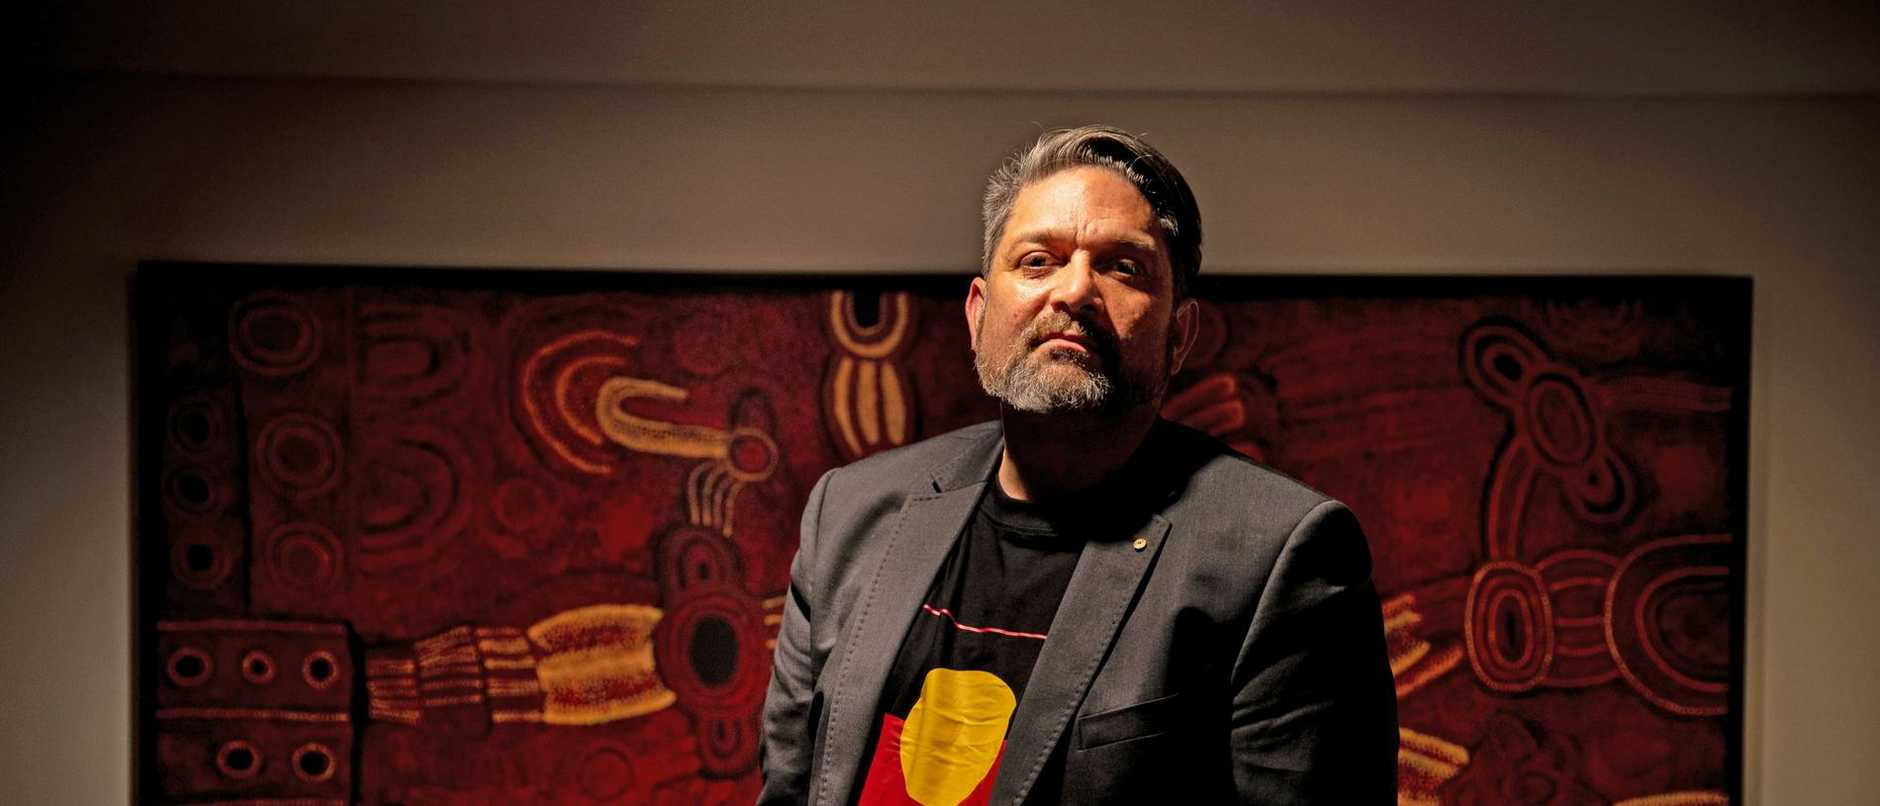 Queensland Theatre's artistic director launched the 2021 season on Sunday night but a perceived lack of Indigenous programming has irked some.